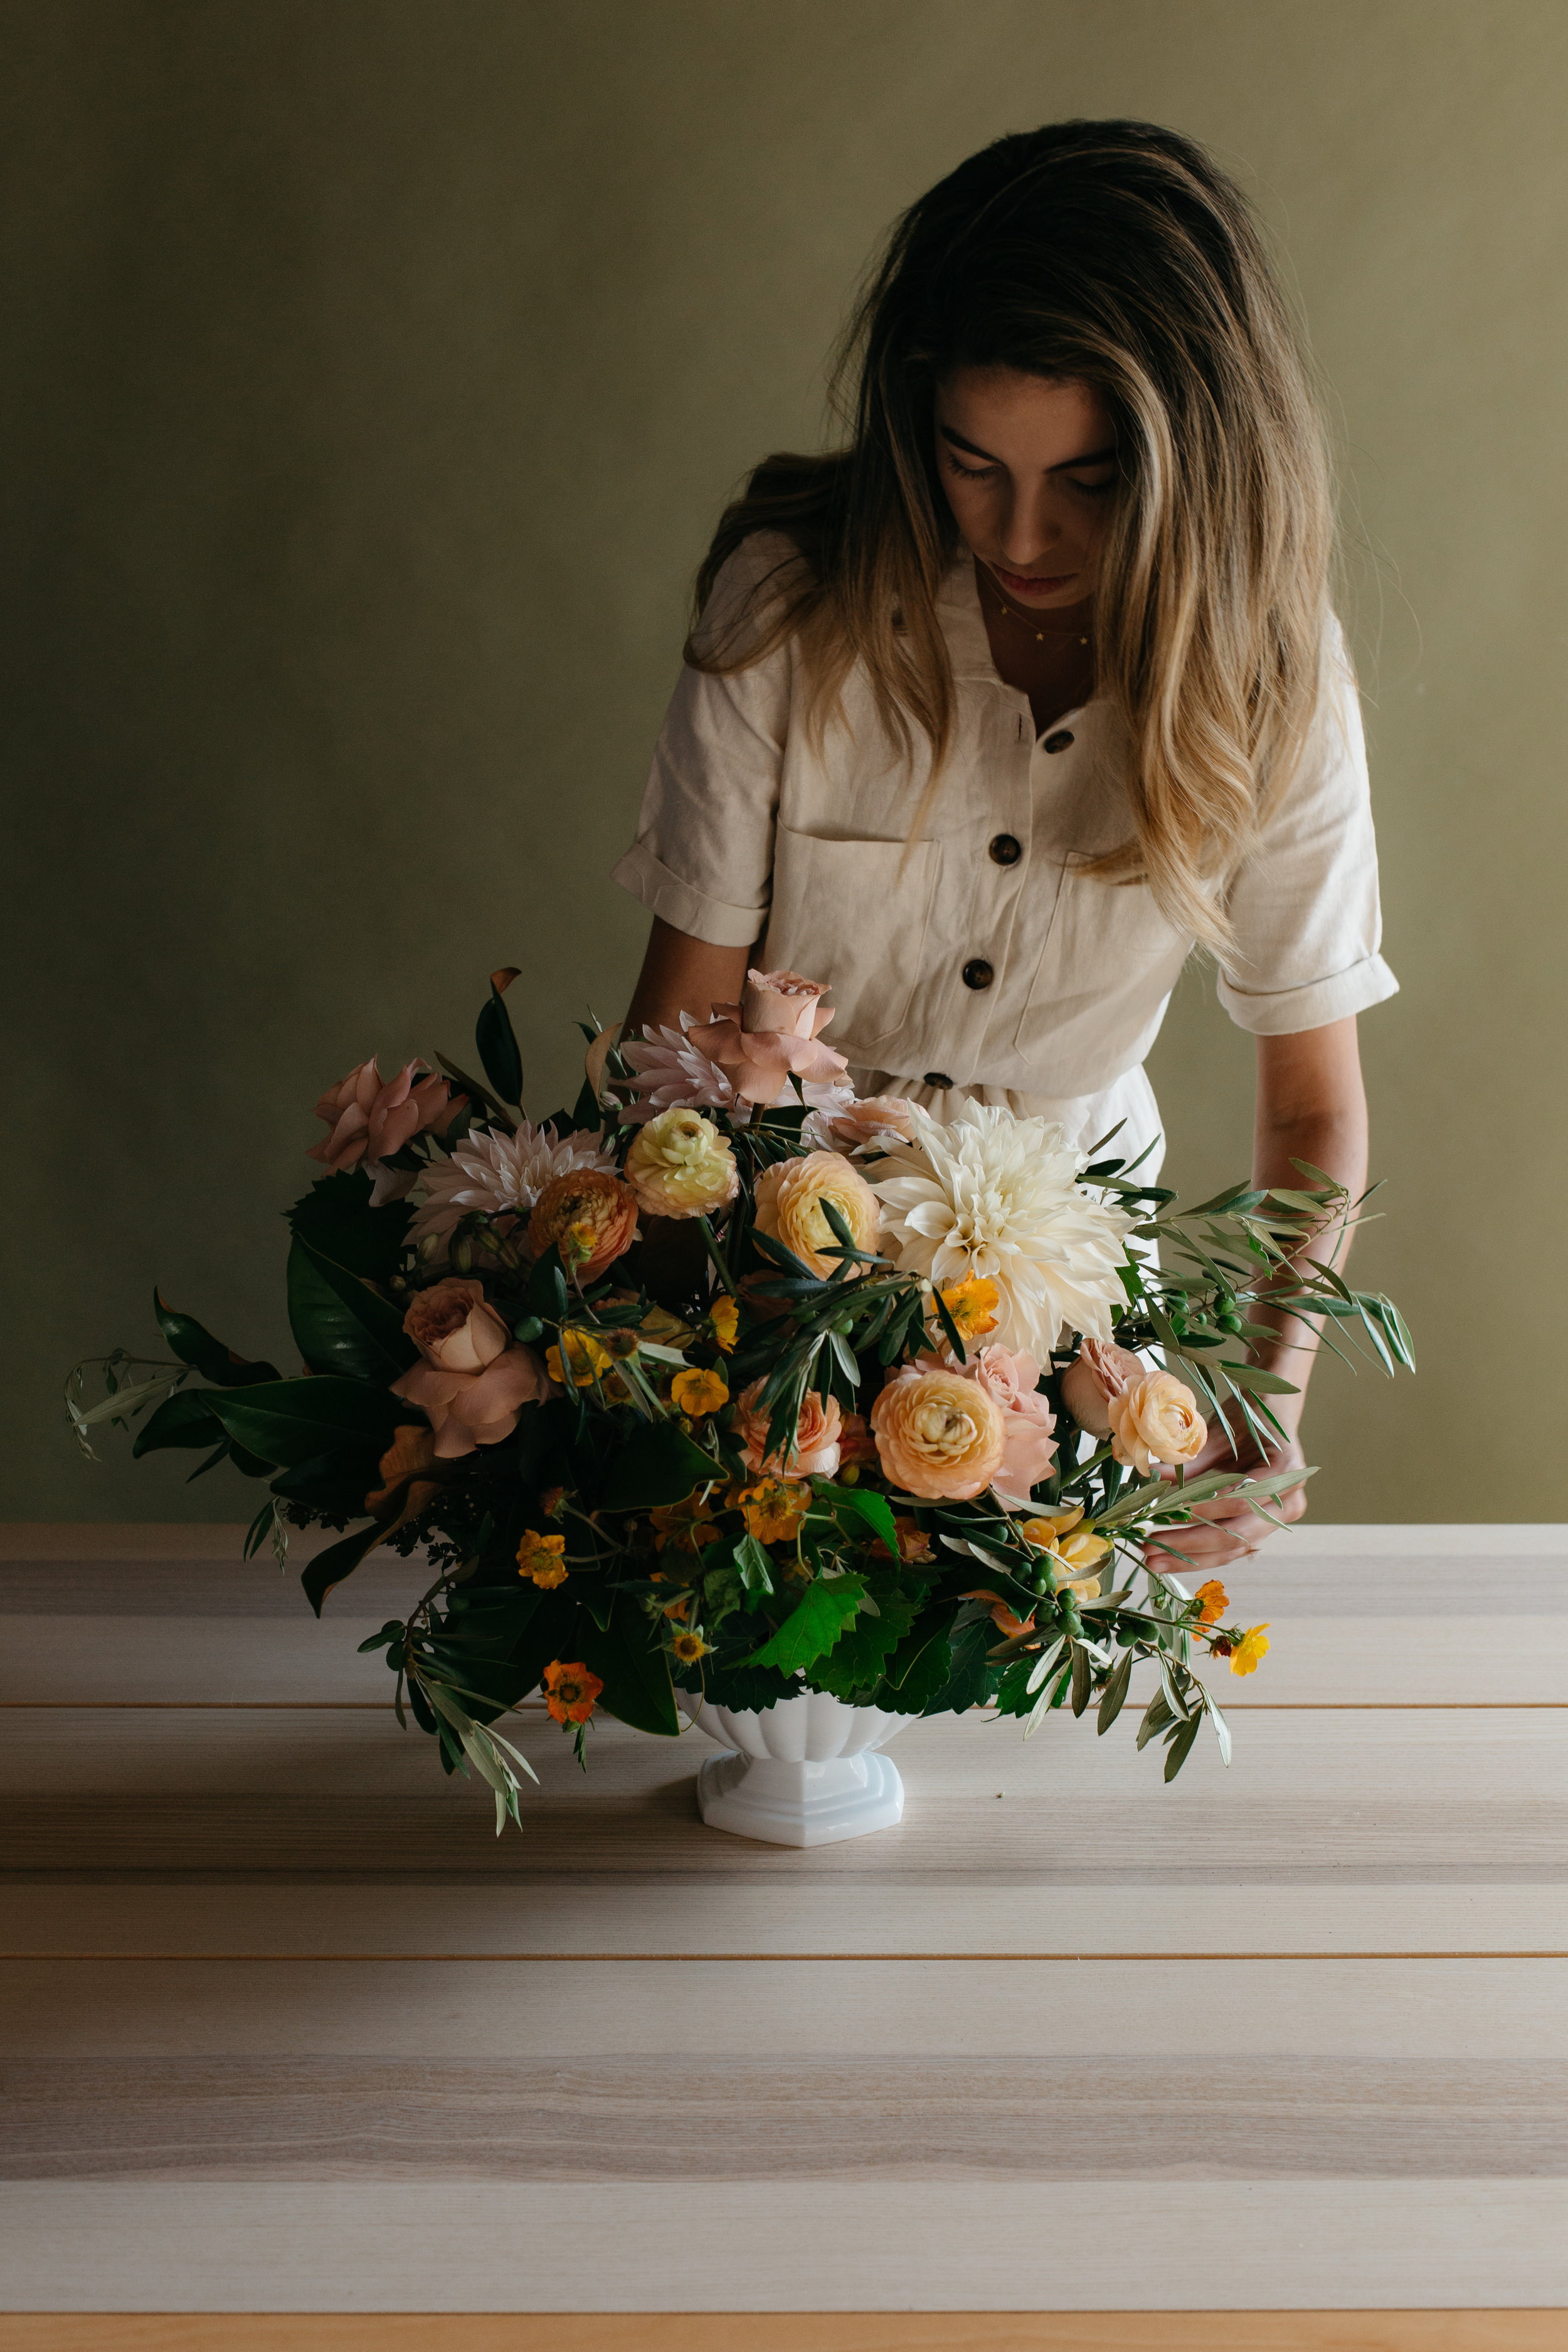 lovely to meet you. - My name is Lina and I live in Jacksonville, FL.I began to fall in love with floral design when I was planning my wedding almost five years ago and started experimenting with florals for friends' bridal showers and baby showers. I didn't realize how much I would love creating with florals as much as I've grown to.Maybe it's the the fact that blooms have the ability to make their surroundings come to life, or maybe it's the thrill in creating something from the beginning. It's a passion of mine and I am so honored to even be considered for your day.When I'm not creating with florals, you can find me devoting most of my time into helping my sweet husband fix up our first home! Life is sweet, messy, and wild... and I wouldn't have it any other way.